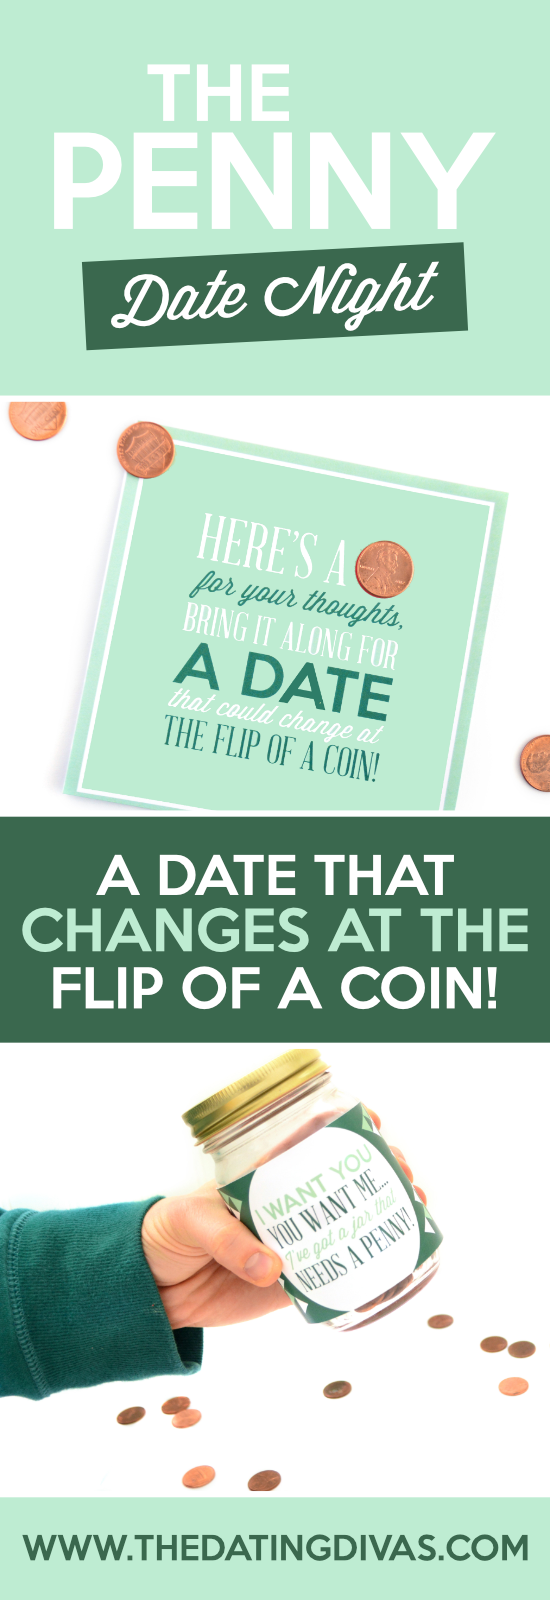 Go on the Penny Date! I love the easy penny date idea that's been going around! I can't wait to make the love jar that The Dating Divas added on. #PennyDate #SpontaneousDate #CuteDateIdea